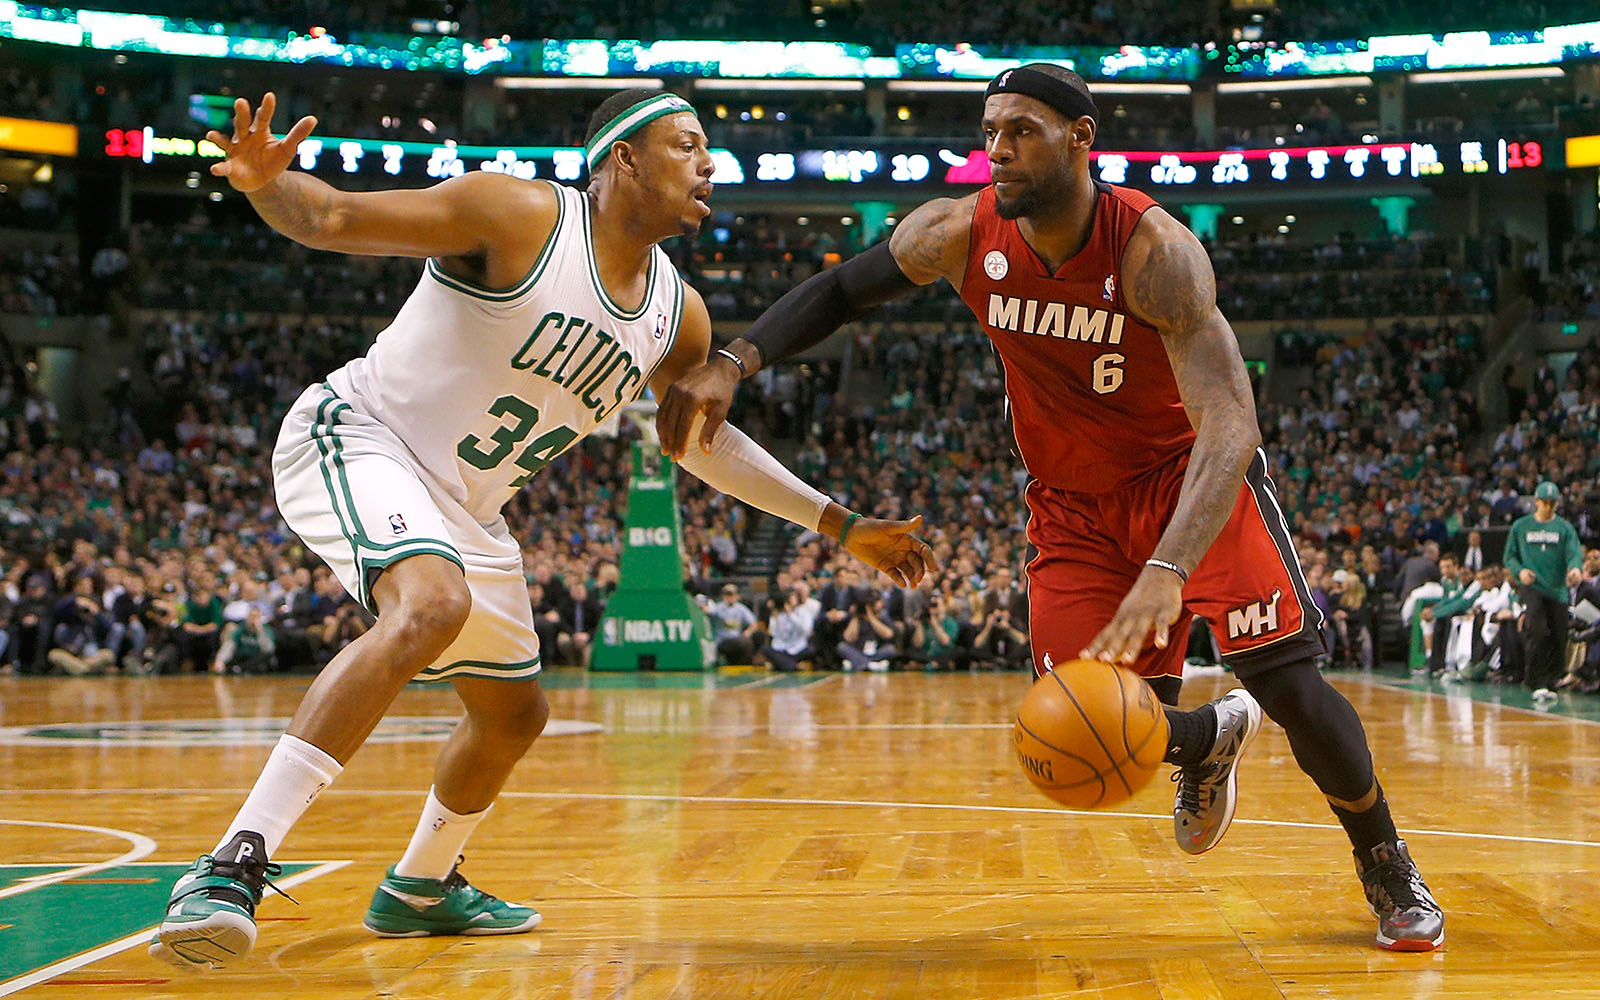 Paul Pierce vs. LeBron James